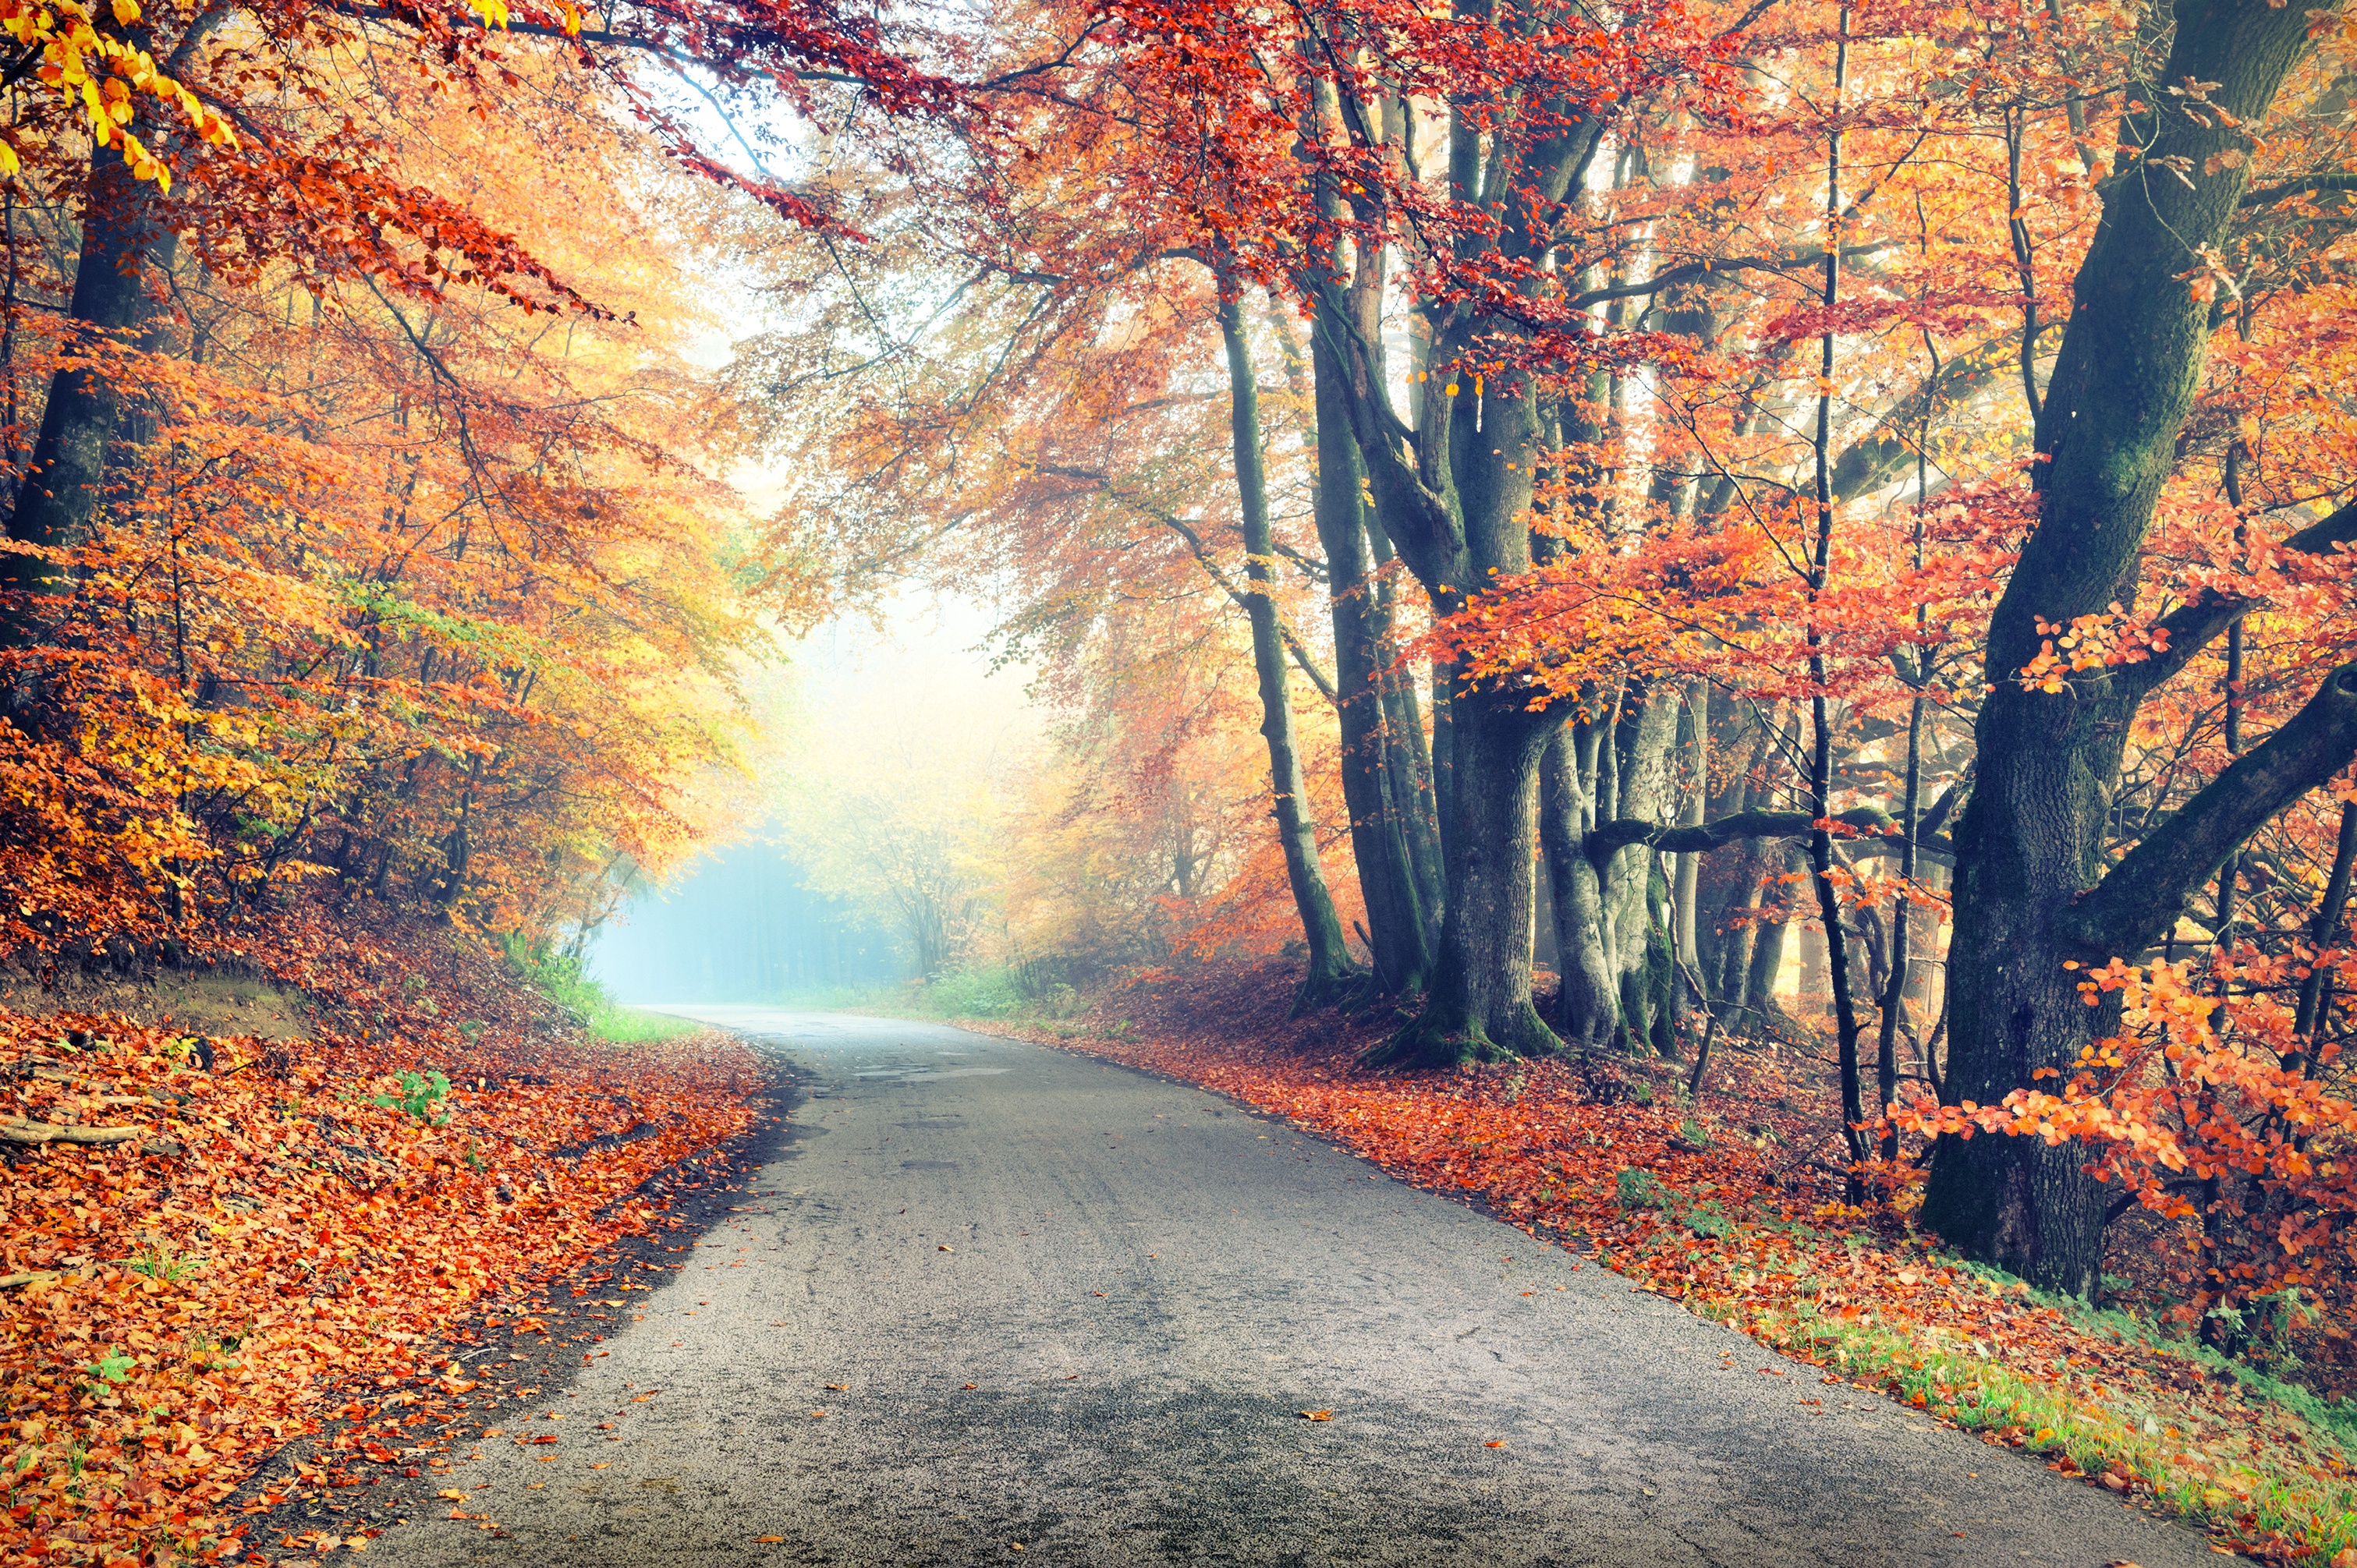 Autumn landscape with country road in or